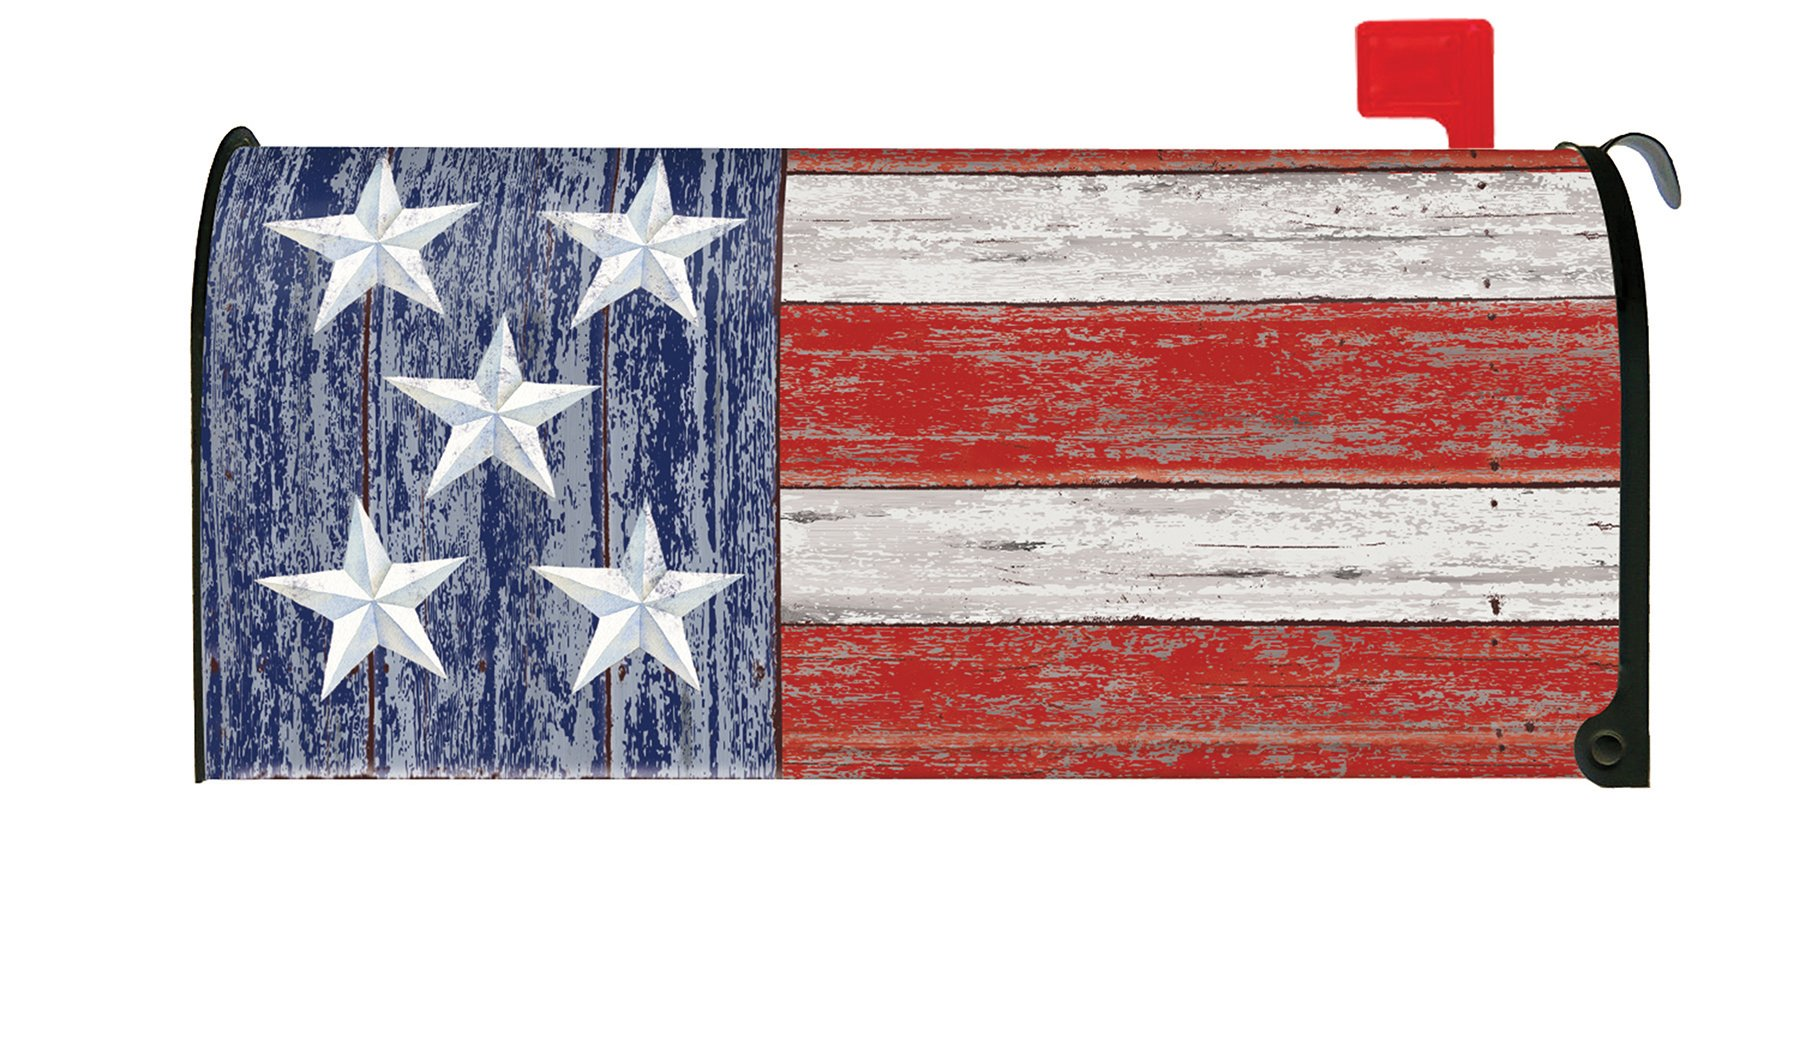 Toland Home Garden Rustic Patriotic USA Stars Stripes 4th July Magnetic Mailbox Cover